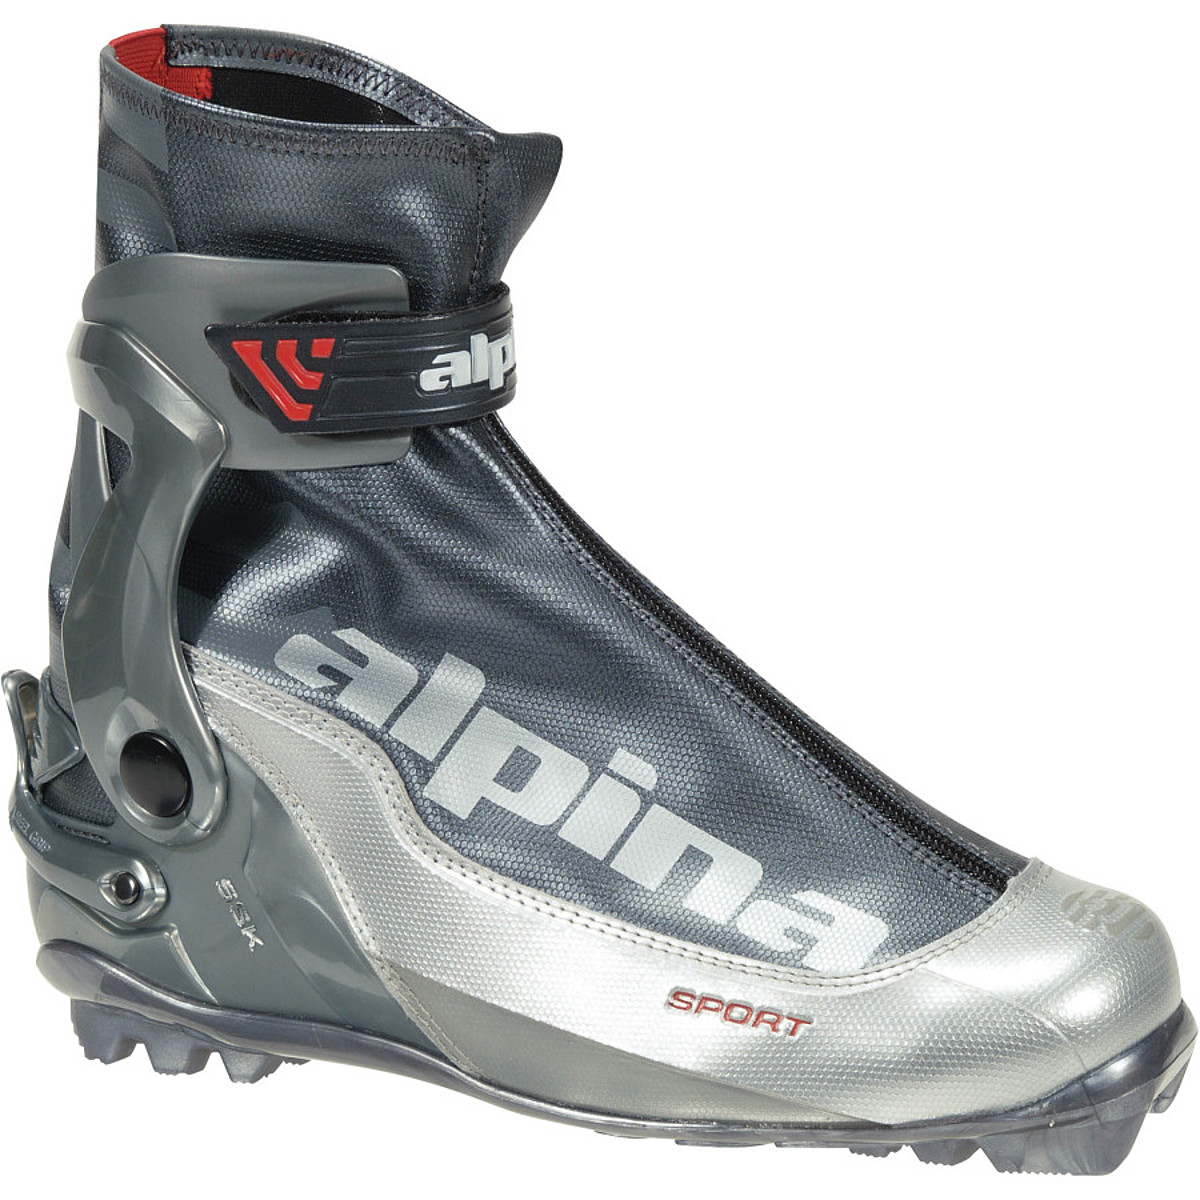 photo: Alpina SSK nordic touring boot